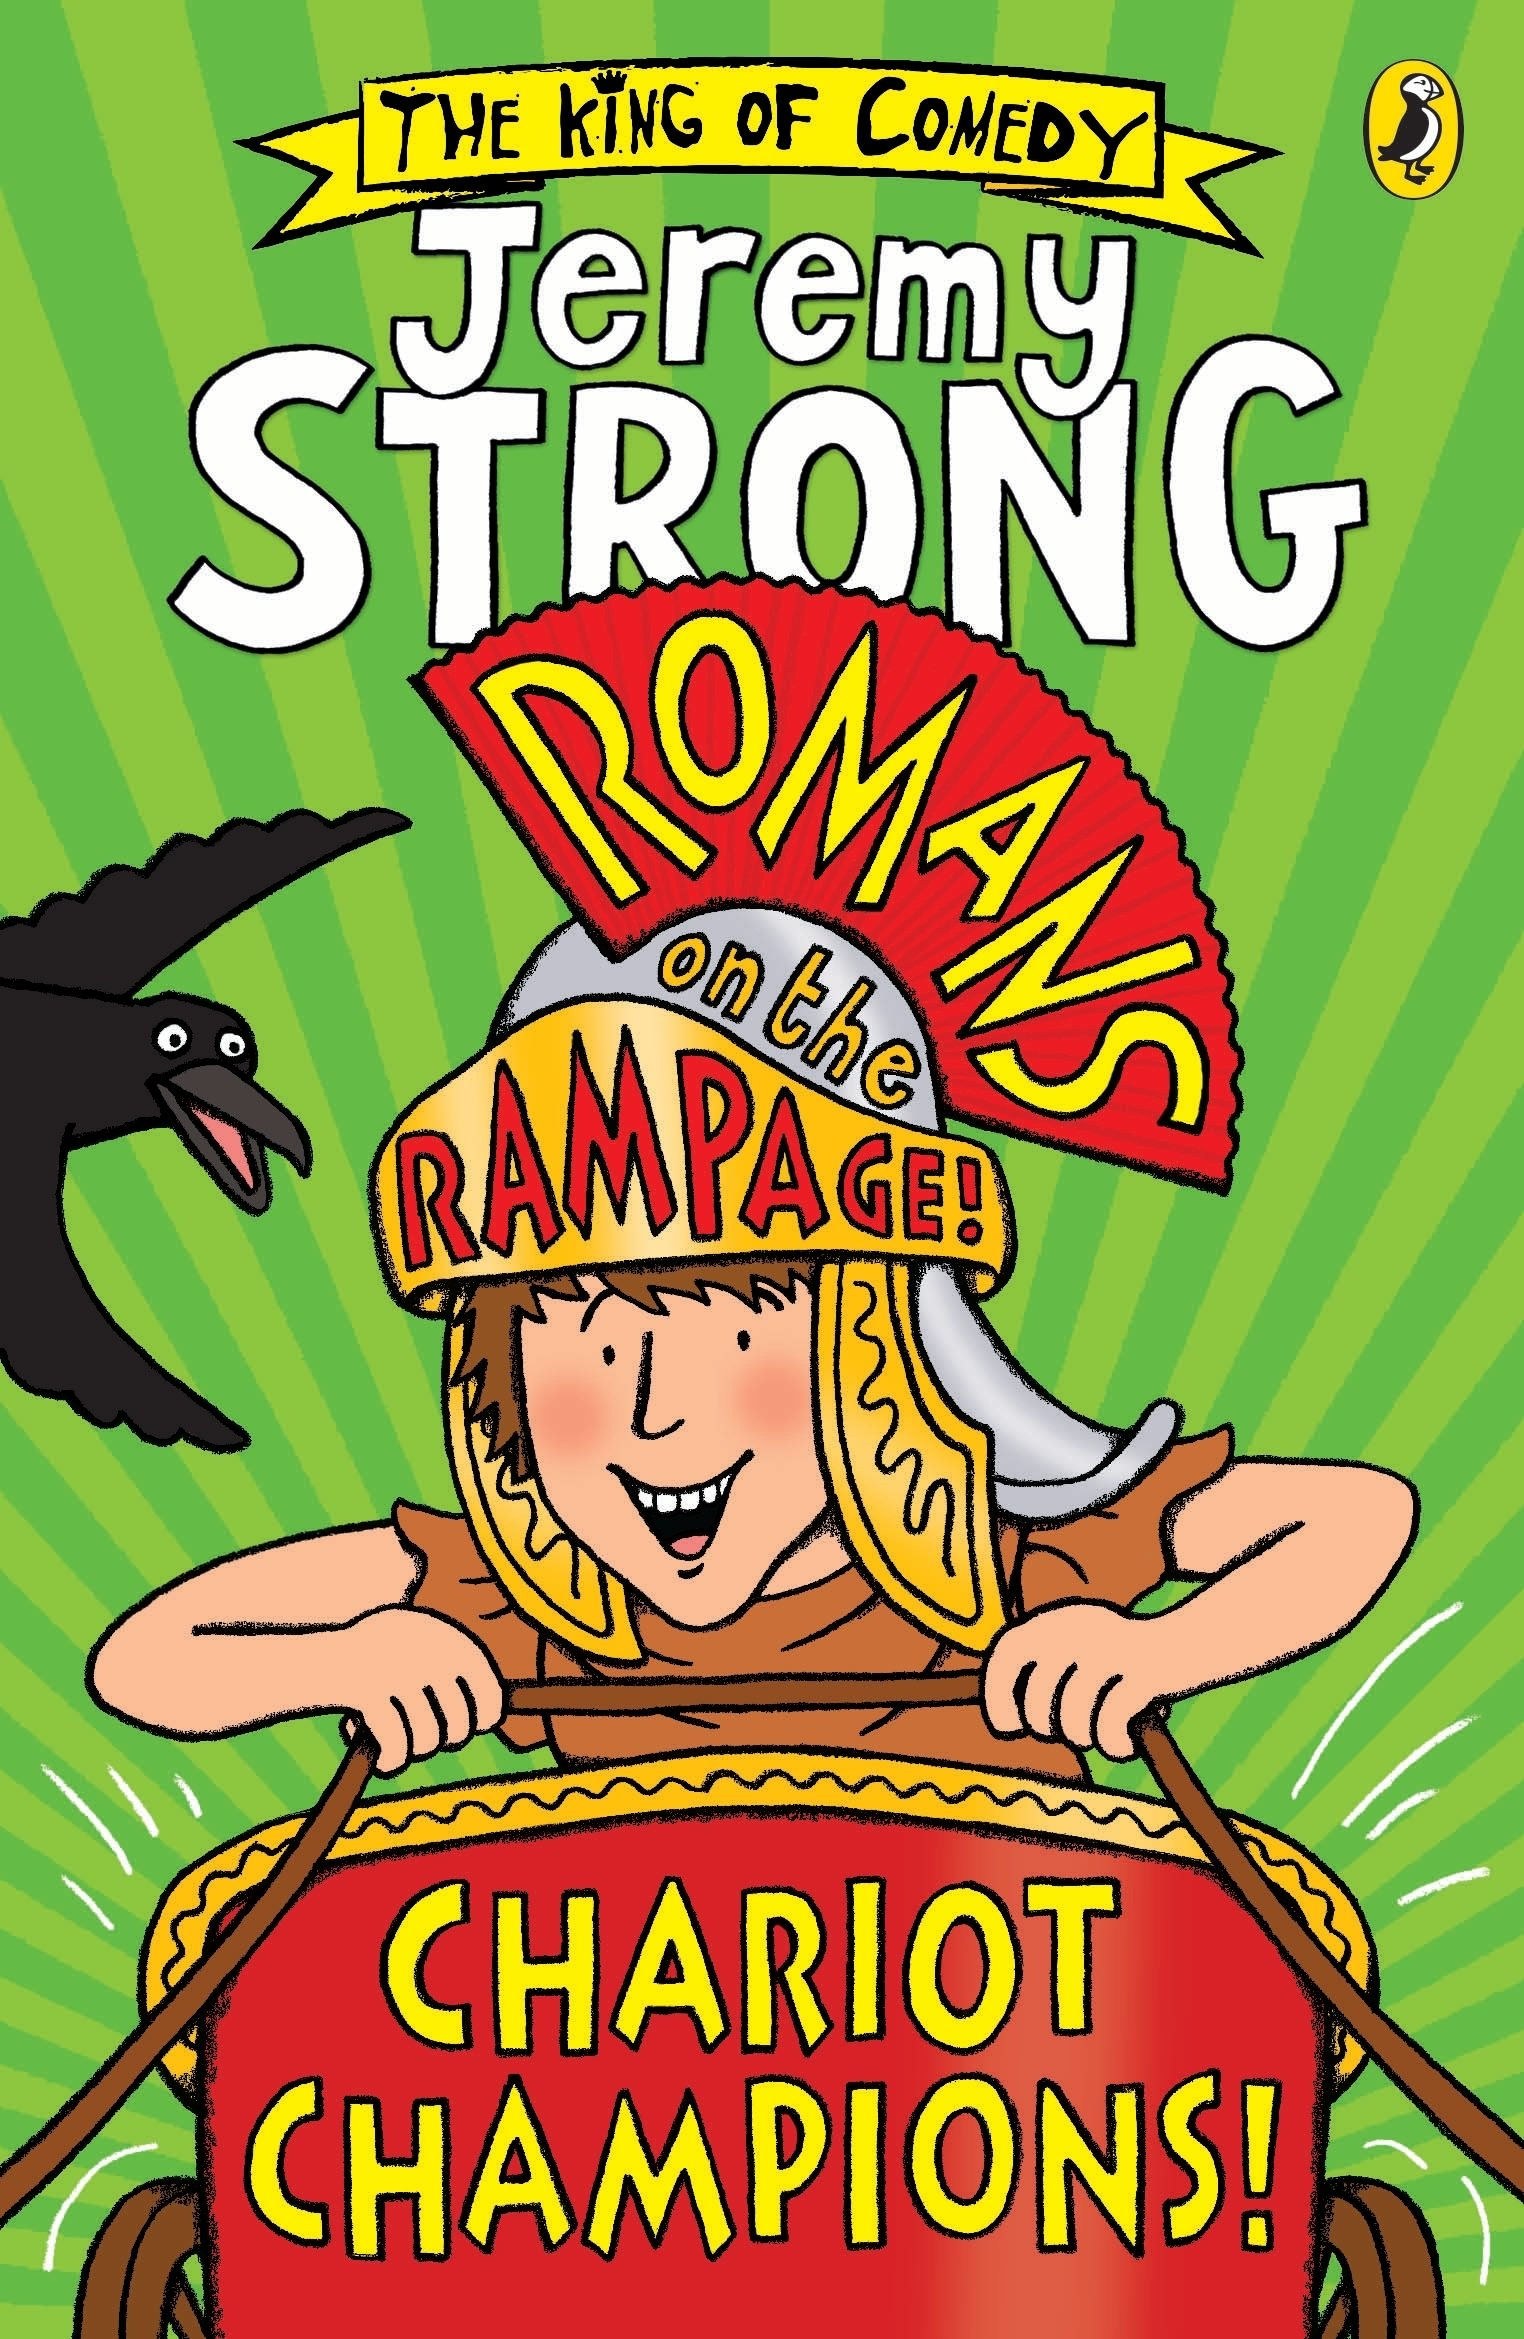 Romans on the Rampage: Chariot Champions: Amazon.co.uk: Strong, Jeremy:  9780141372556: Books